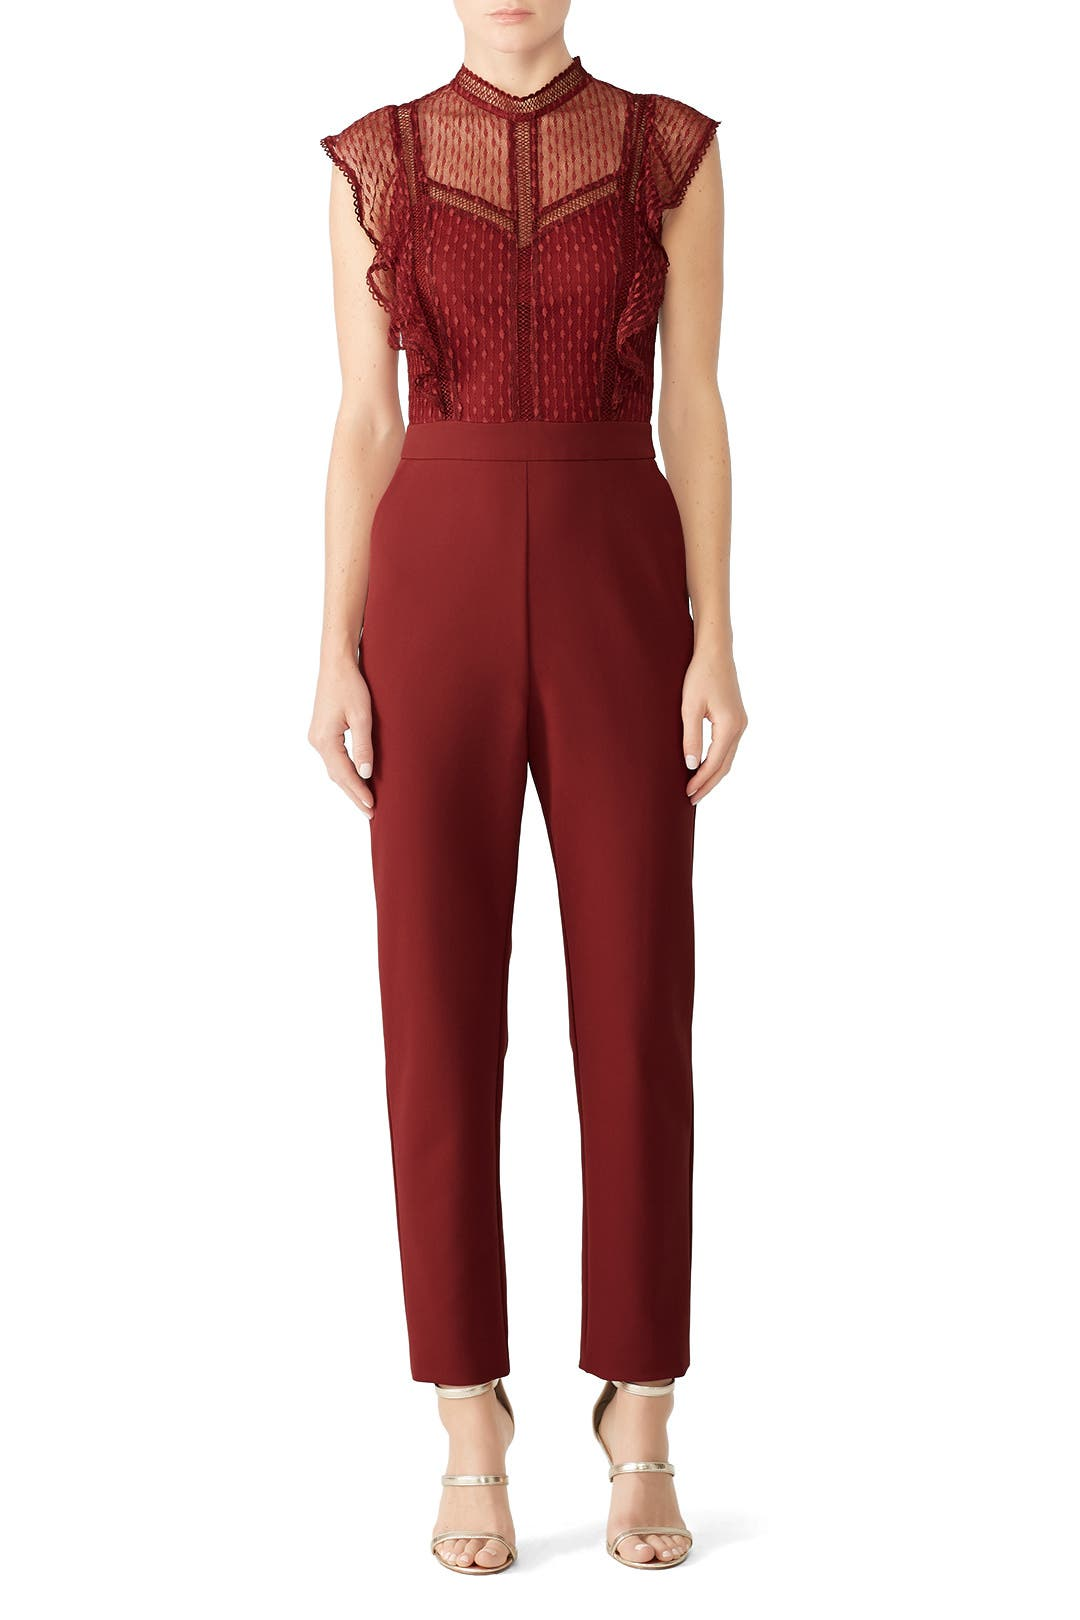 3aee4c3abaed Grady Jumpsuit by Adelyn Rae for  30 -  40